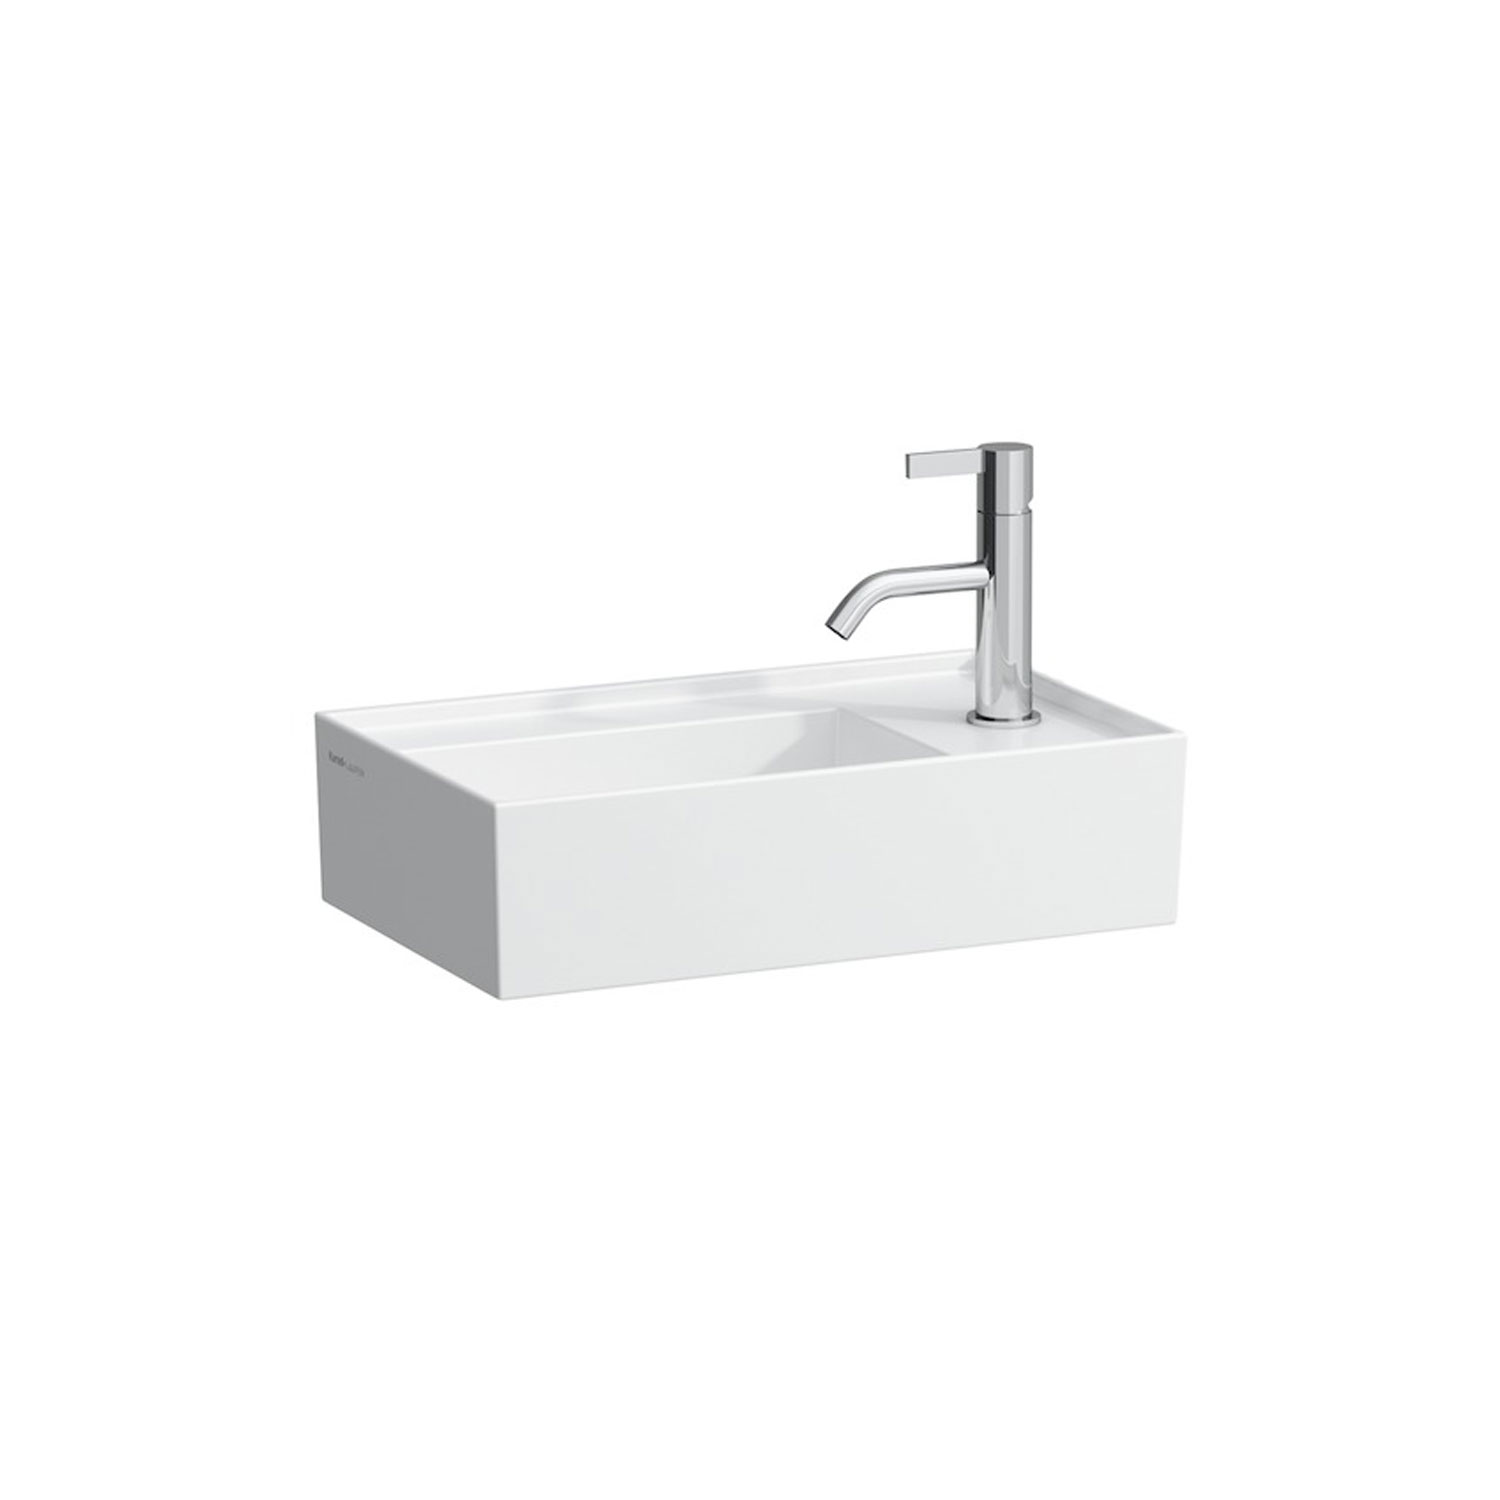 click on Small Basin Asym image to enlarge